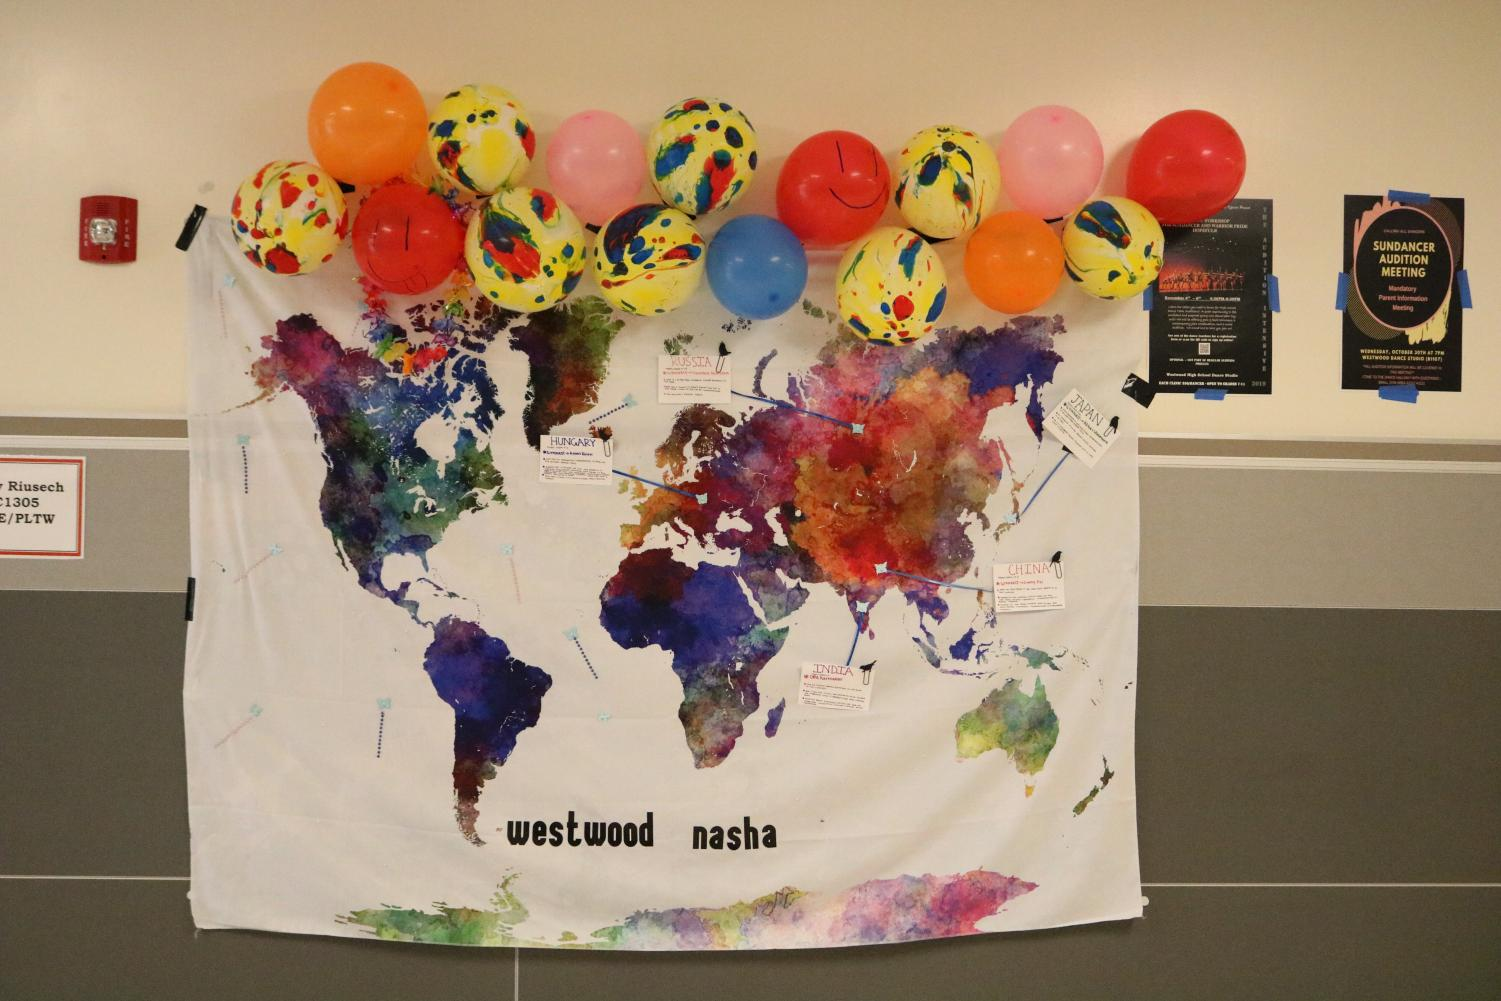 Westwood+Nasha%2C+the+Bollywood+club%2C+created+a+poster+depicting+their+choice+of+gymnastics+for+the+homecoming+theme+of+Olympics.+They+made+a+poster+of+the+world+with+colorful+balloons%2C+cards+that+talk+about+famous+gymnasts%2C+and+other+decorations.